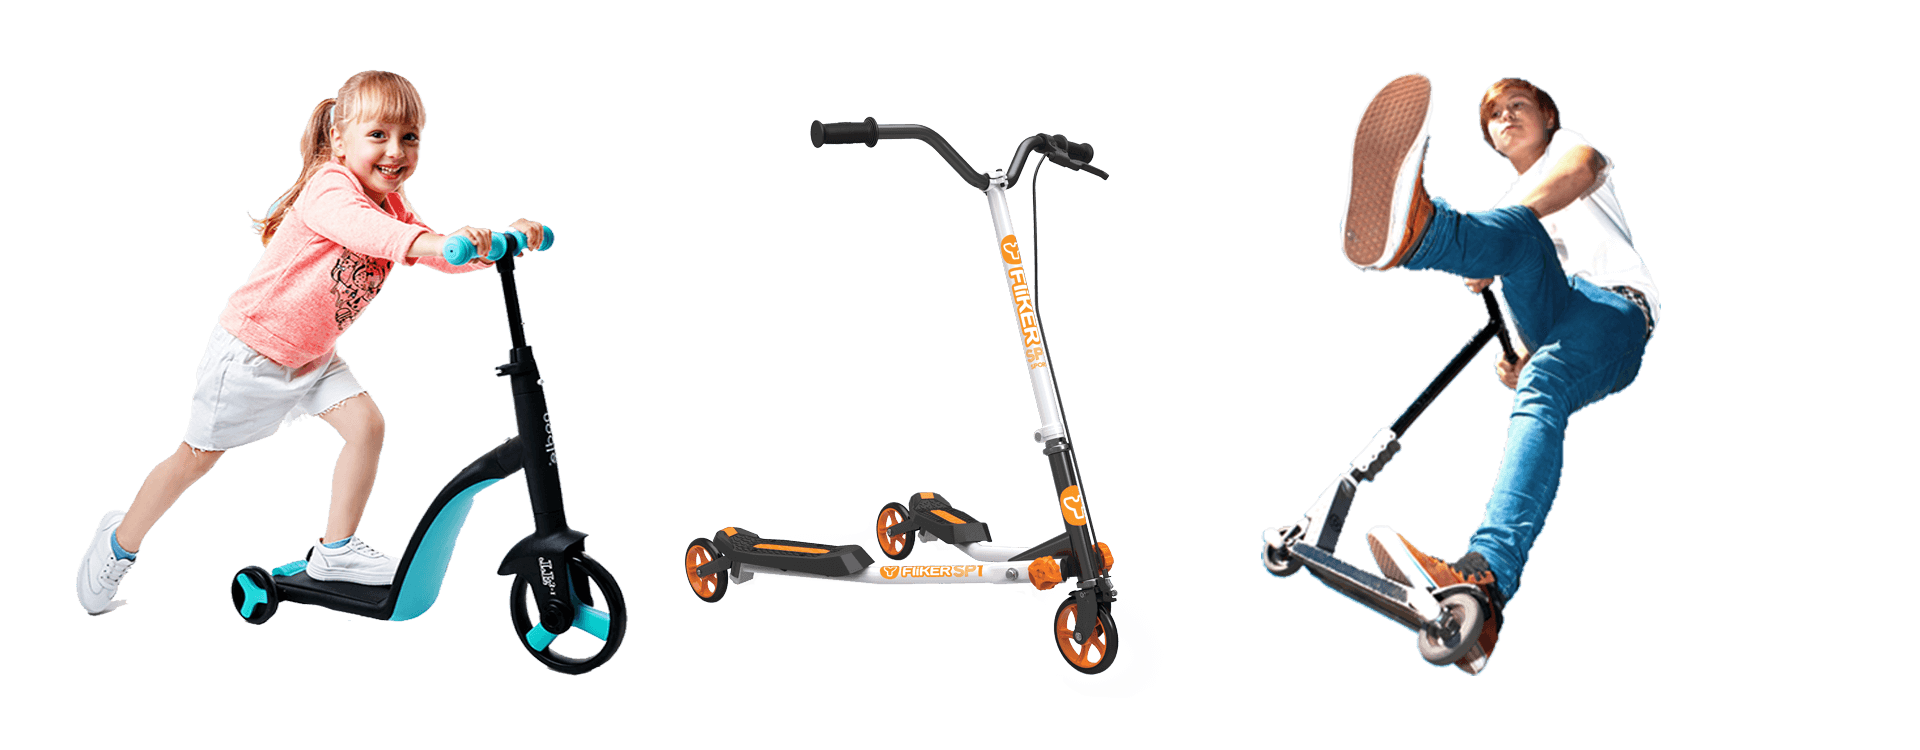 7 Best Scooters for Kids in 2019 (Guide & Reviews)